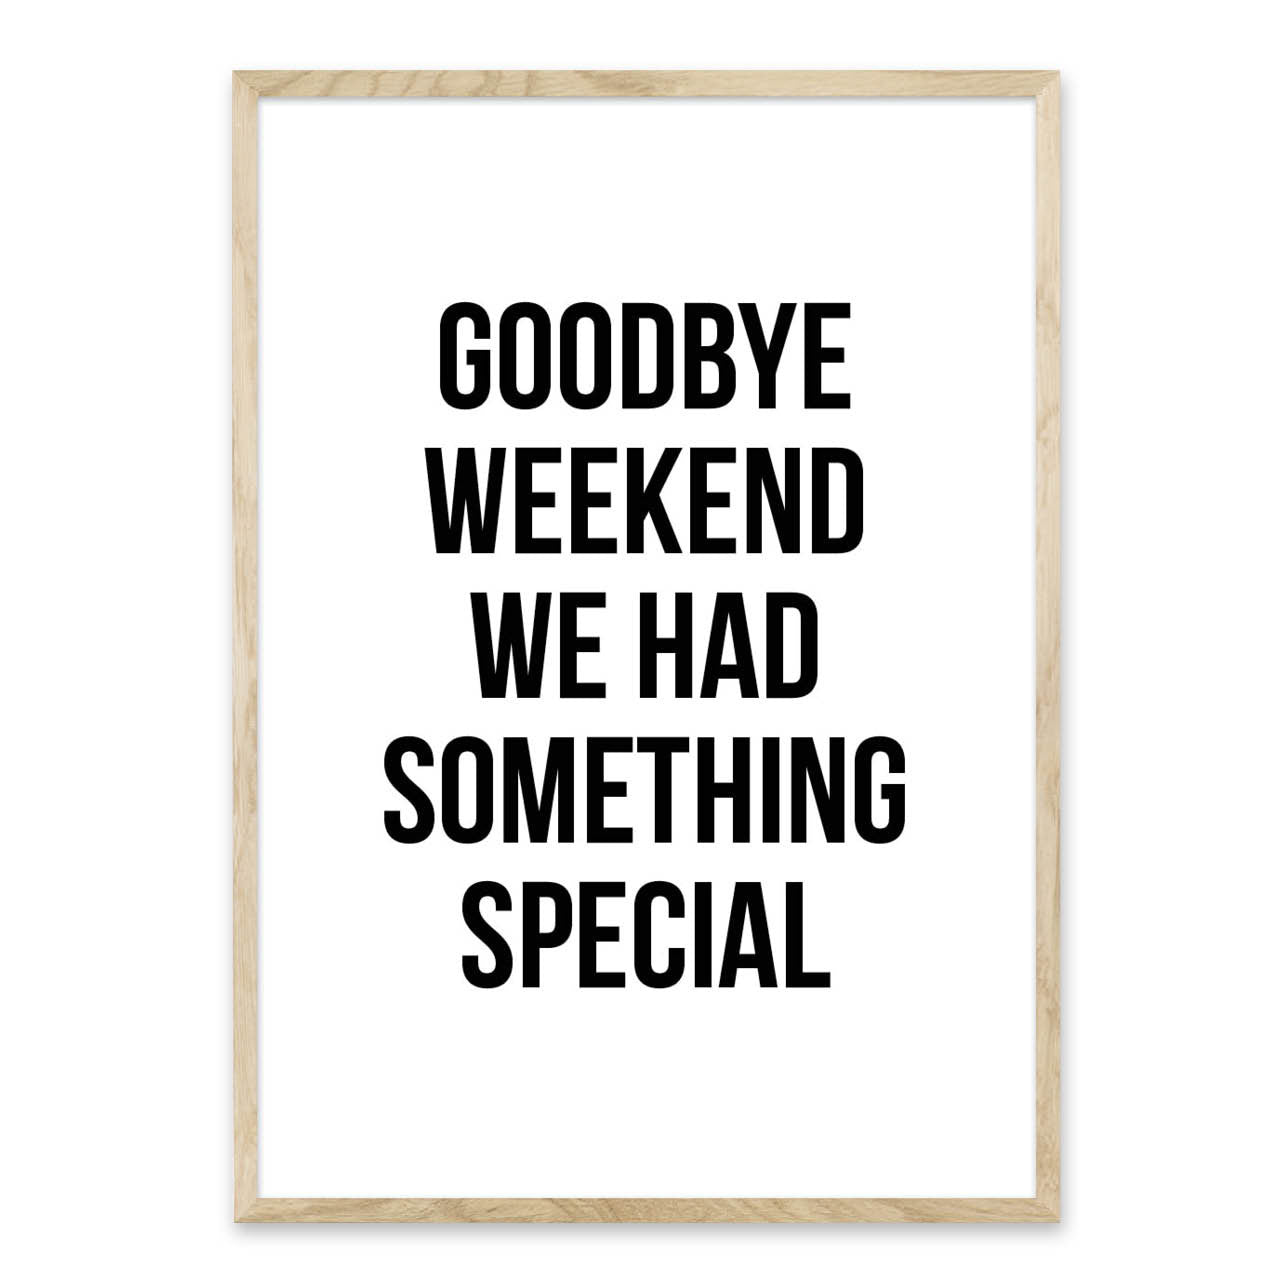 Goodbye weekend